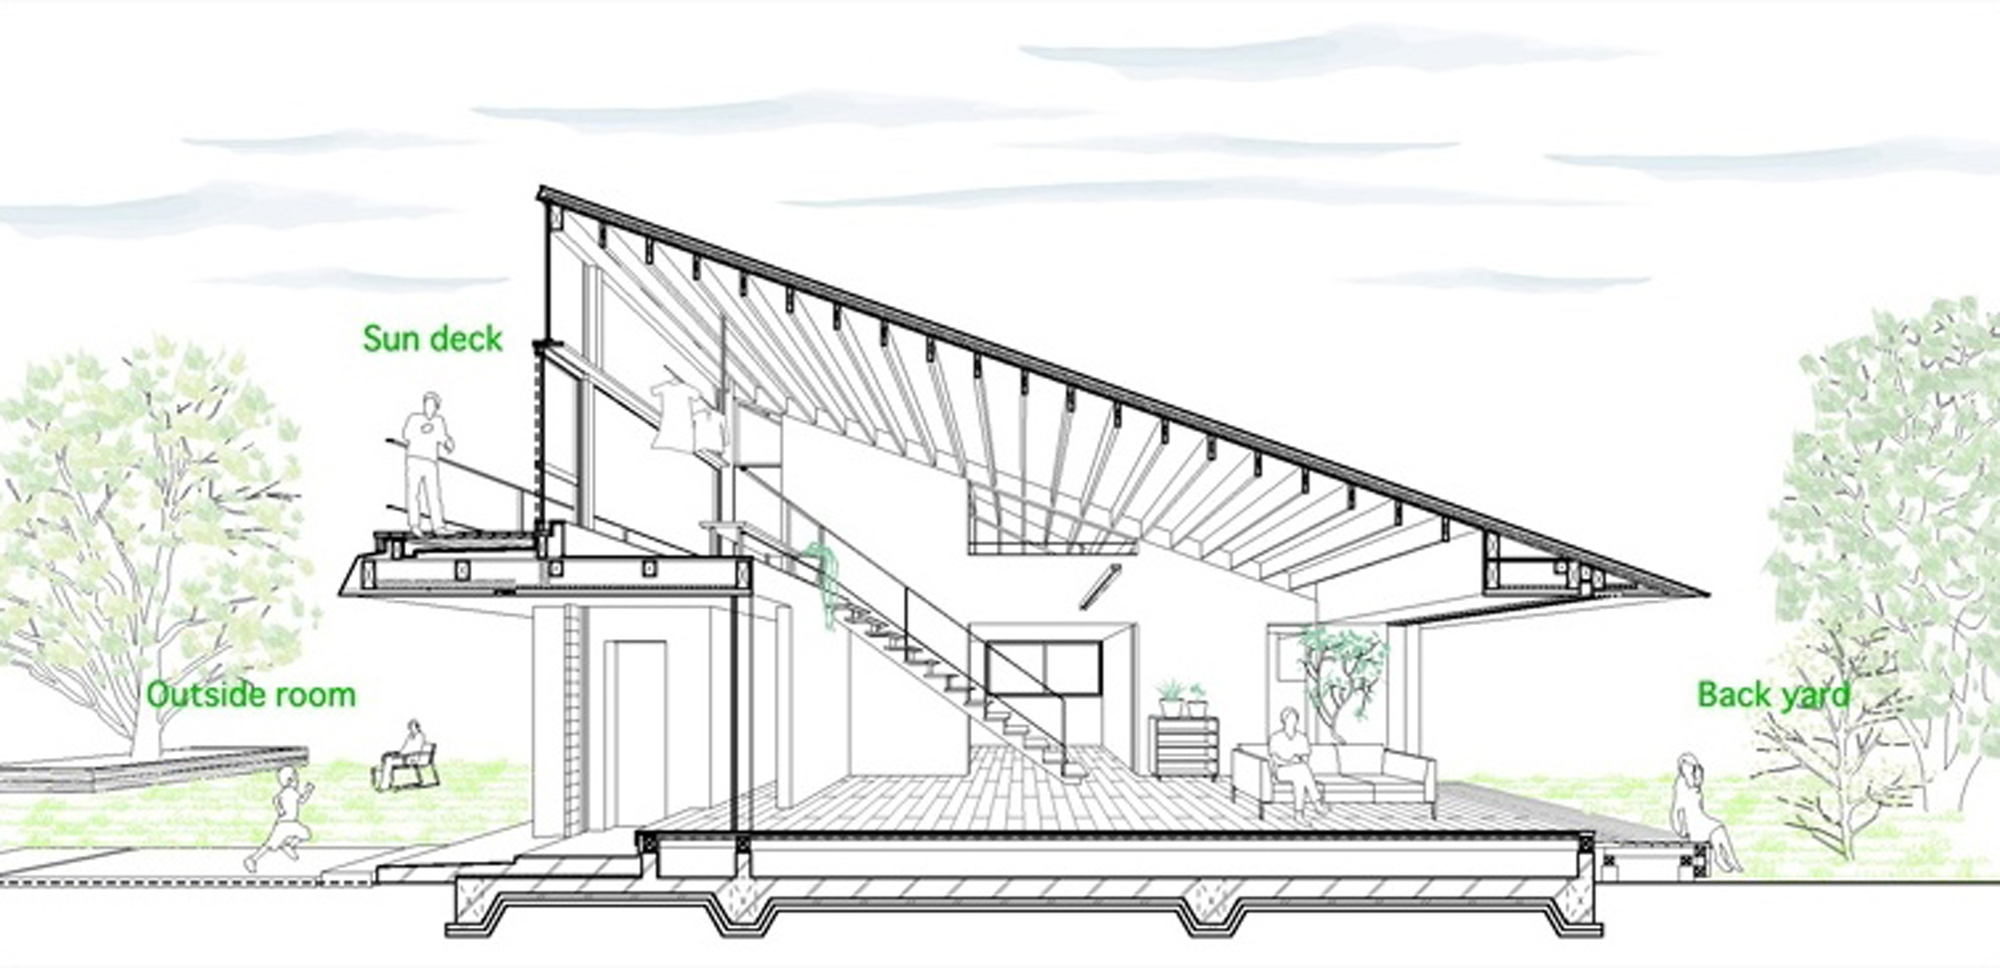 52eb20dde8e44e2dbe00009e_house-with-a-large-hipped-roof-naoi-architecture-design-office_section